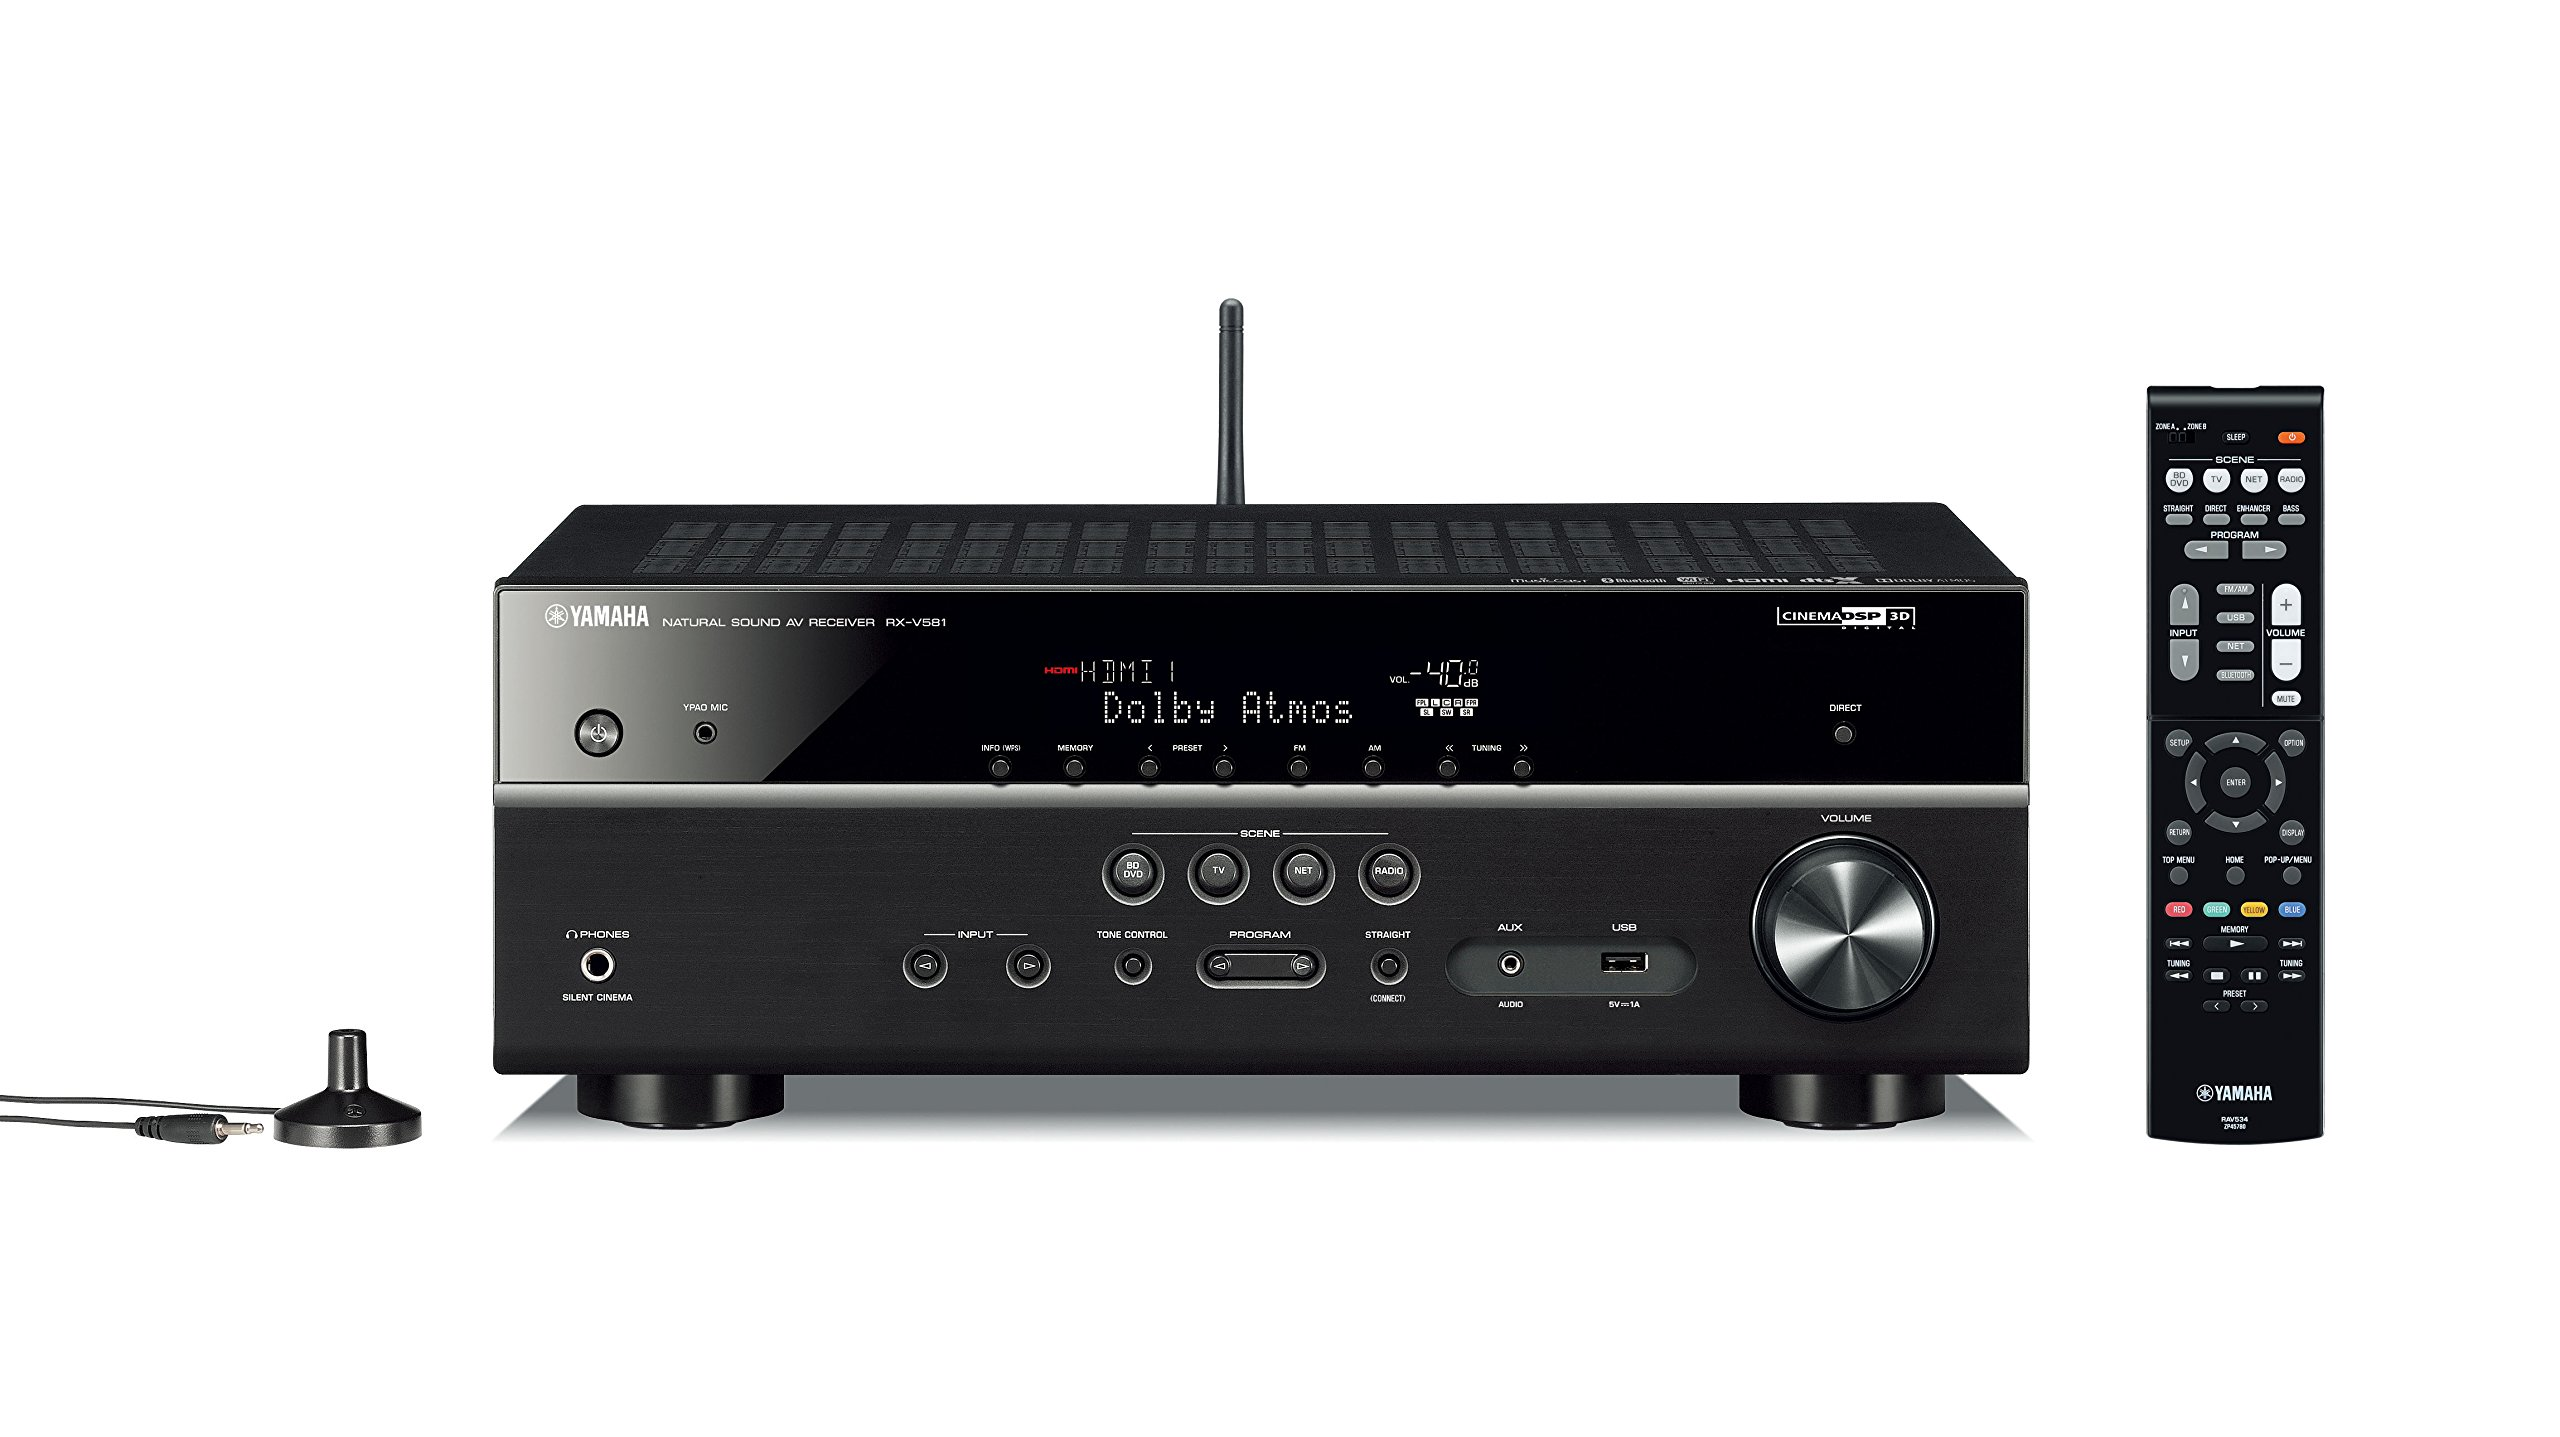 Yamaha RX-V581 7.2-Ch x 80 Watts Networking A/V Receiver by Yamaha